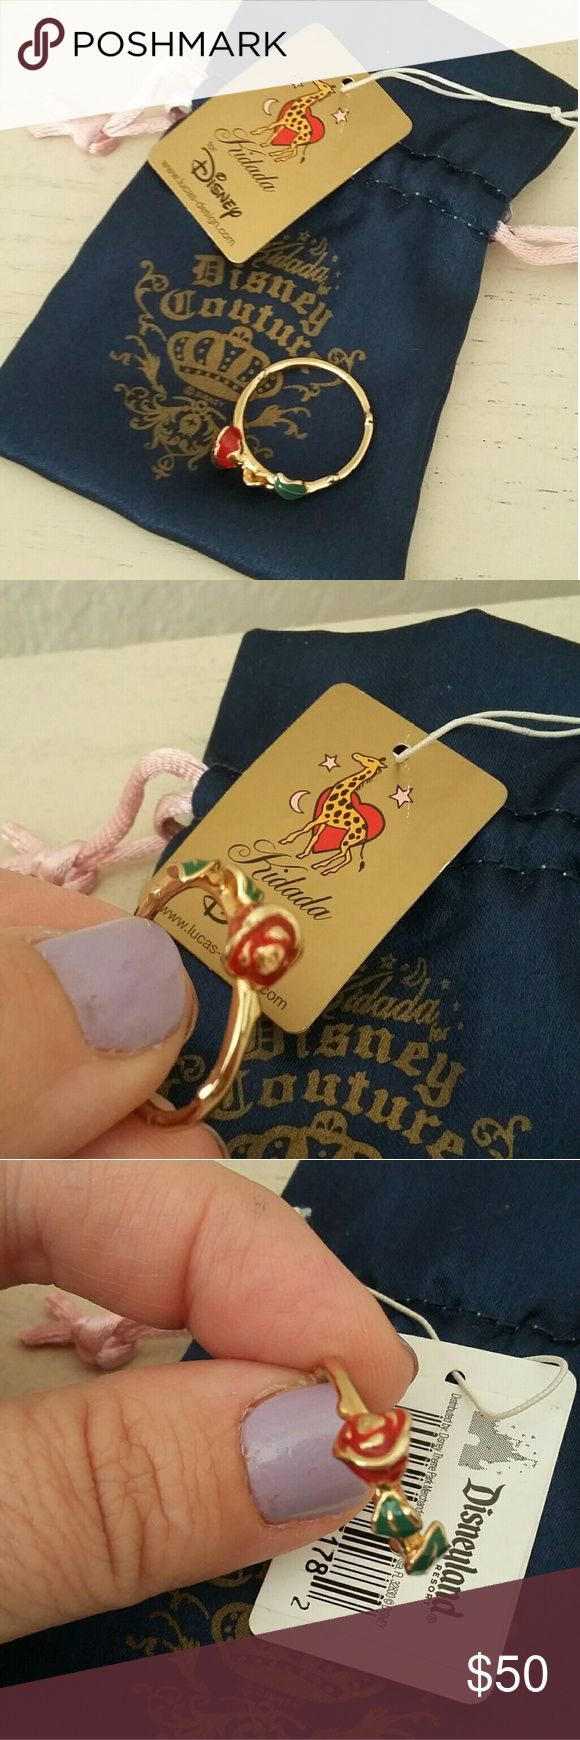 Disney couture Beauty and the Beast rose ring Used condition although in great shape. Gold Platte with enamel  painting. Disney Jewelry Rings